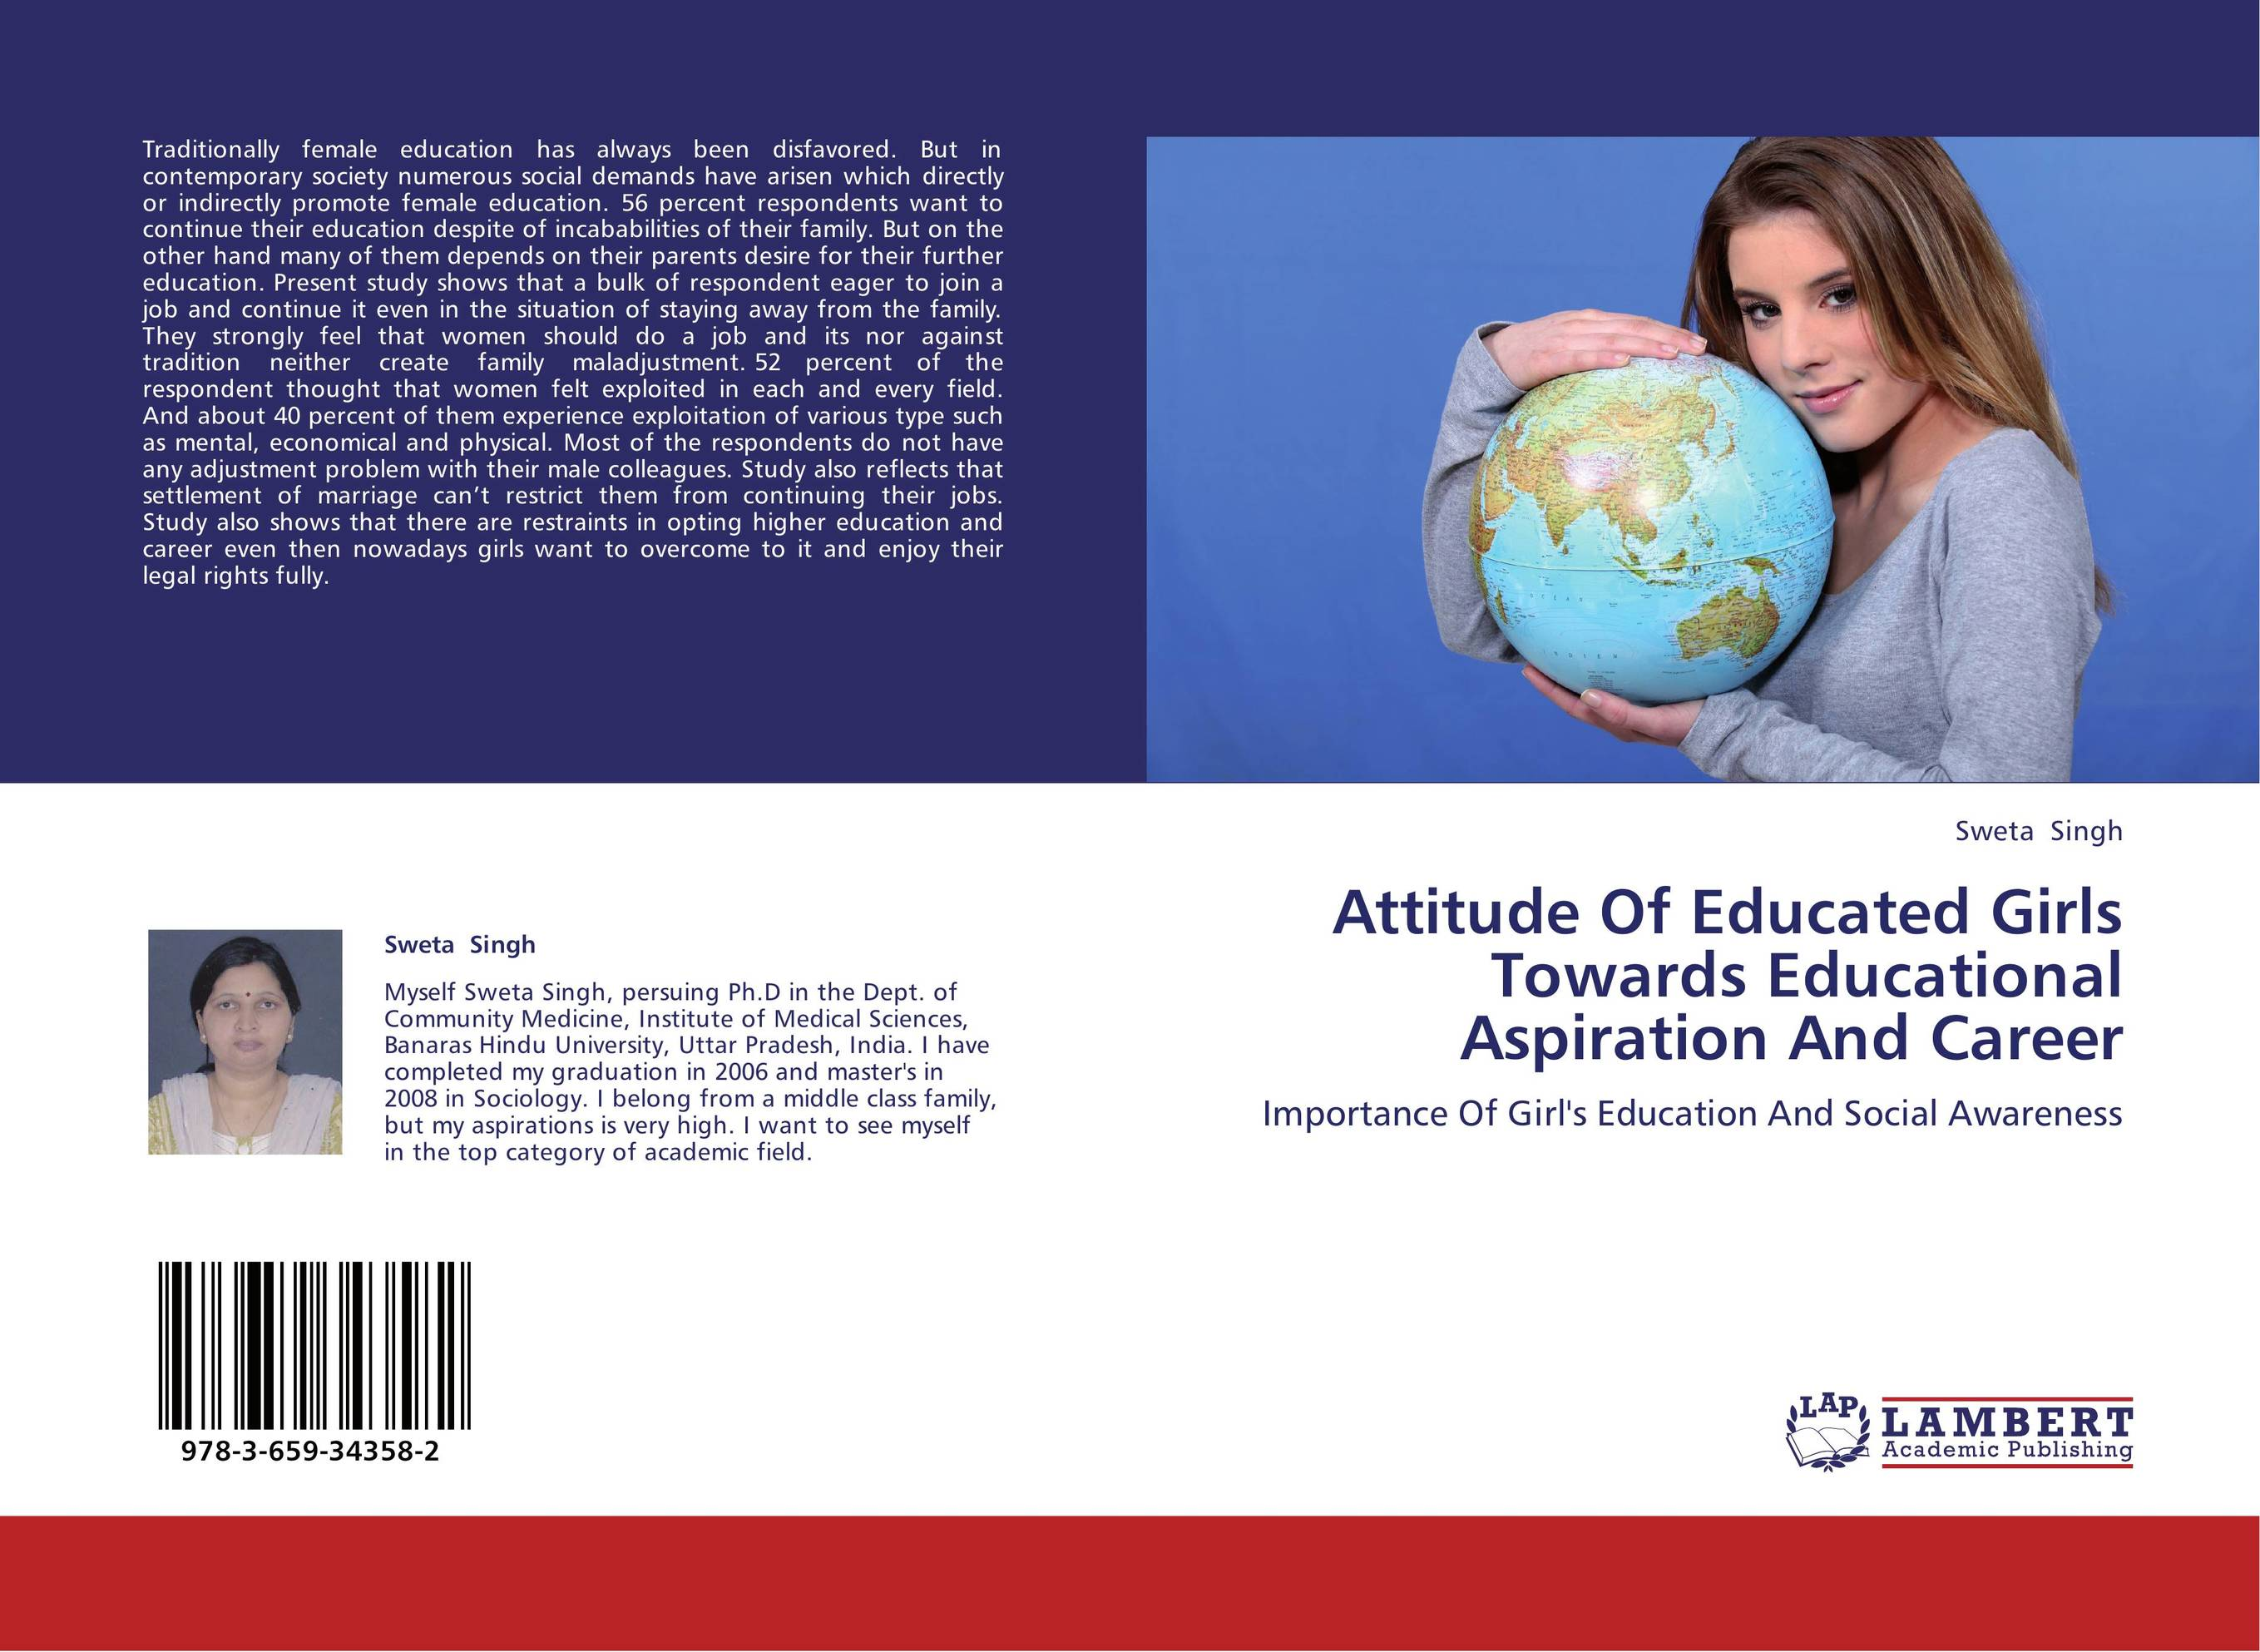 essay on right to education for girls The girls rights project is dedicated to ensuring that girls throughout the world have a right to life, health, freedom and education and to ending trafficking, violence and other forms of mistreatment and discrimination against girls.